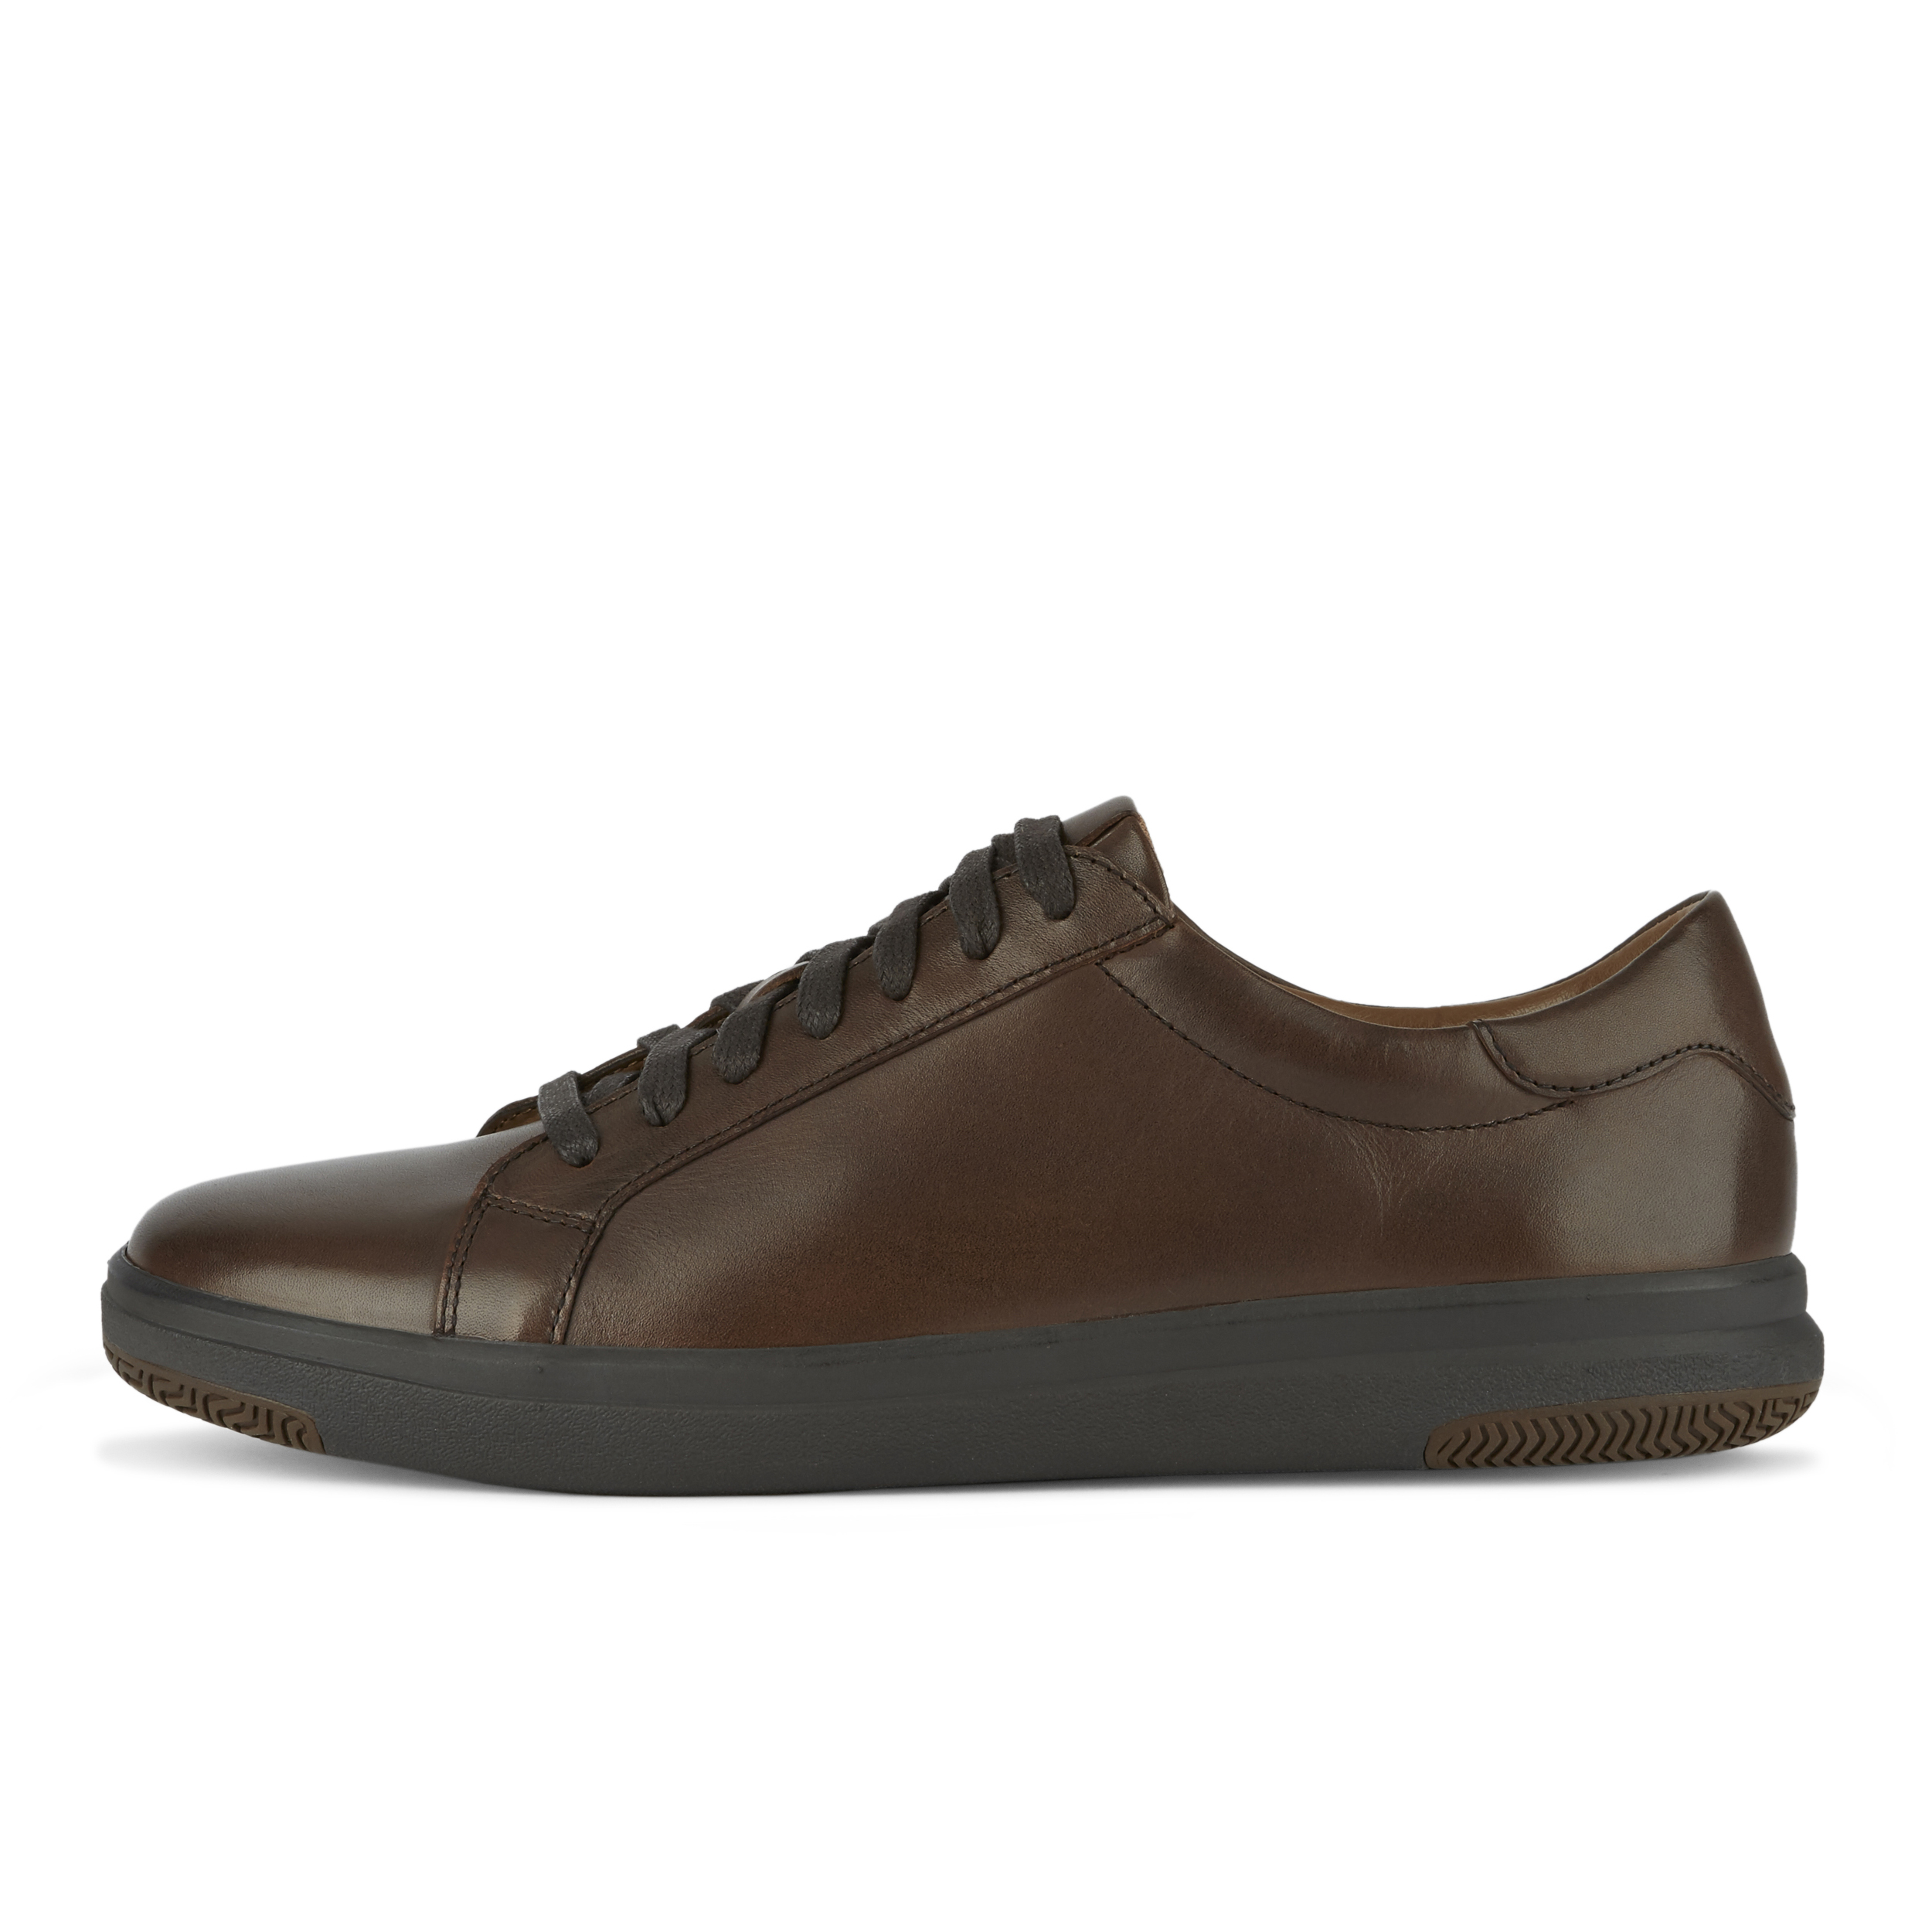 Dockers-Mens-Gilmore-Genuine-Leather-Casual-Fashion-Lace-up-Sneaker-Shoe thumbnail 17